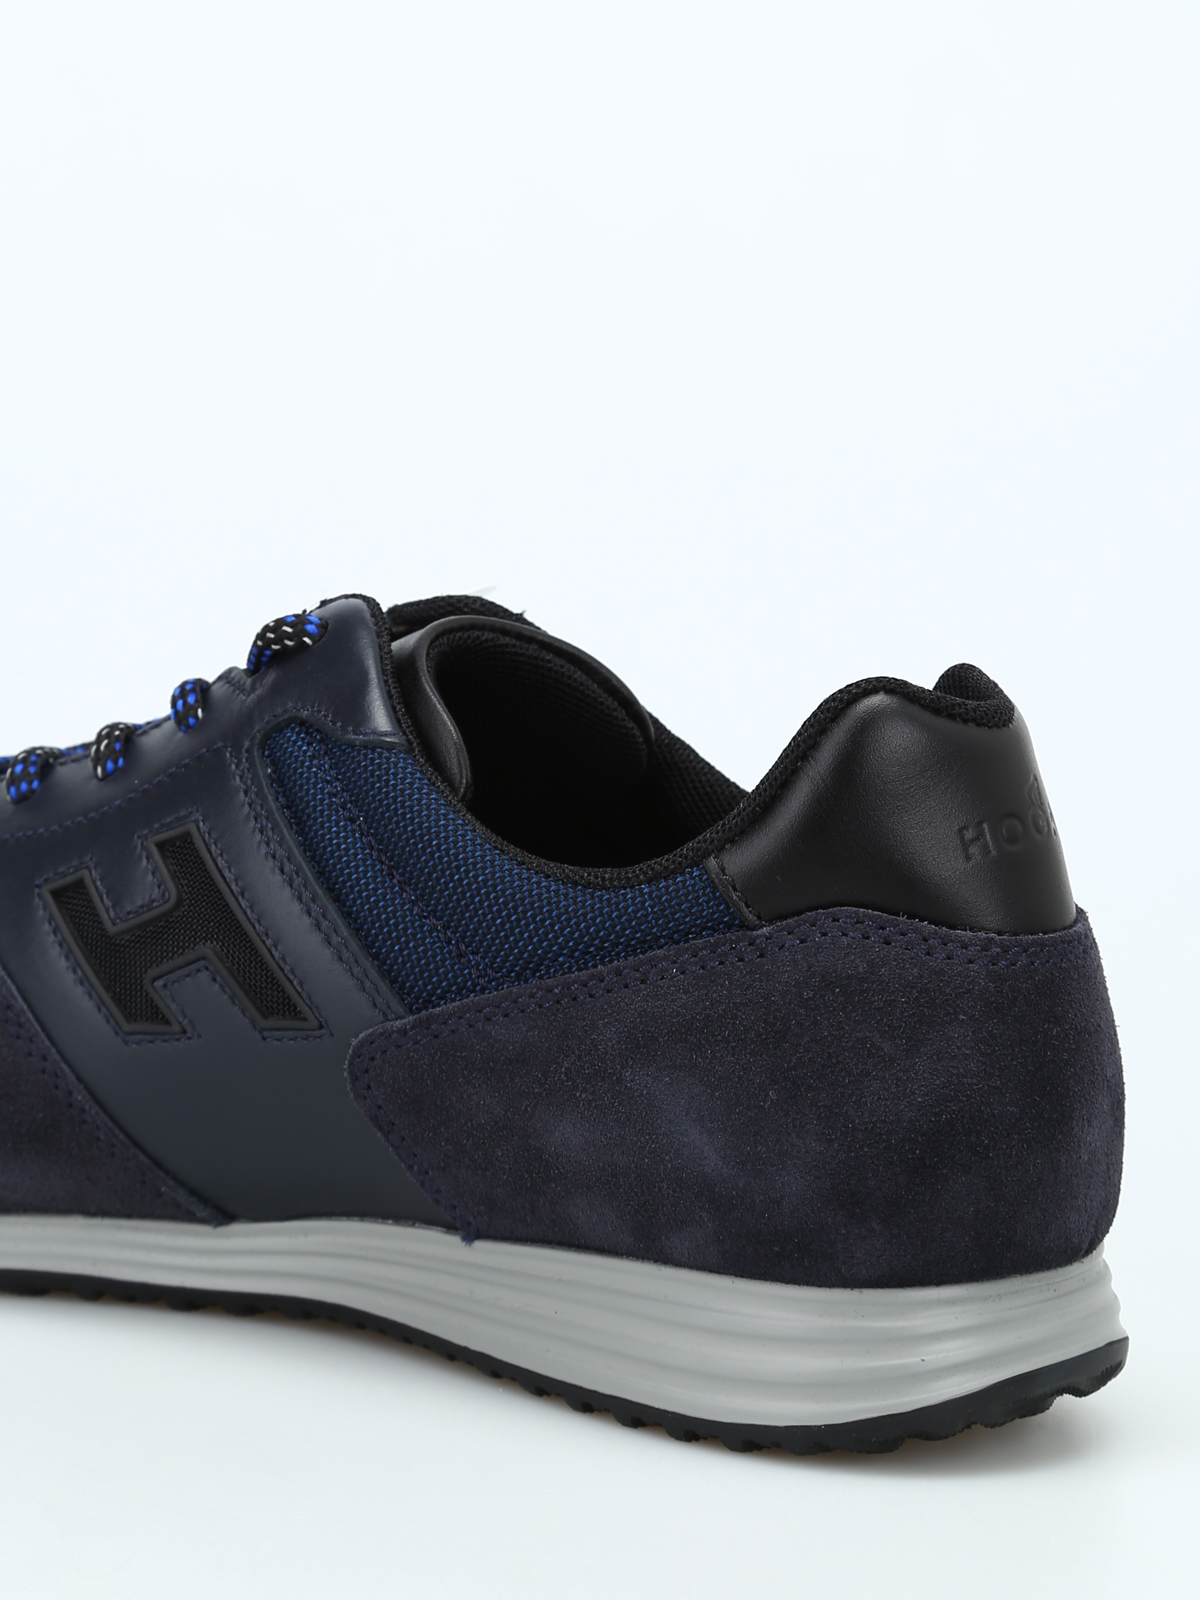 Hogan H205 Olympia X blue sneakers trainers